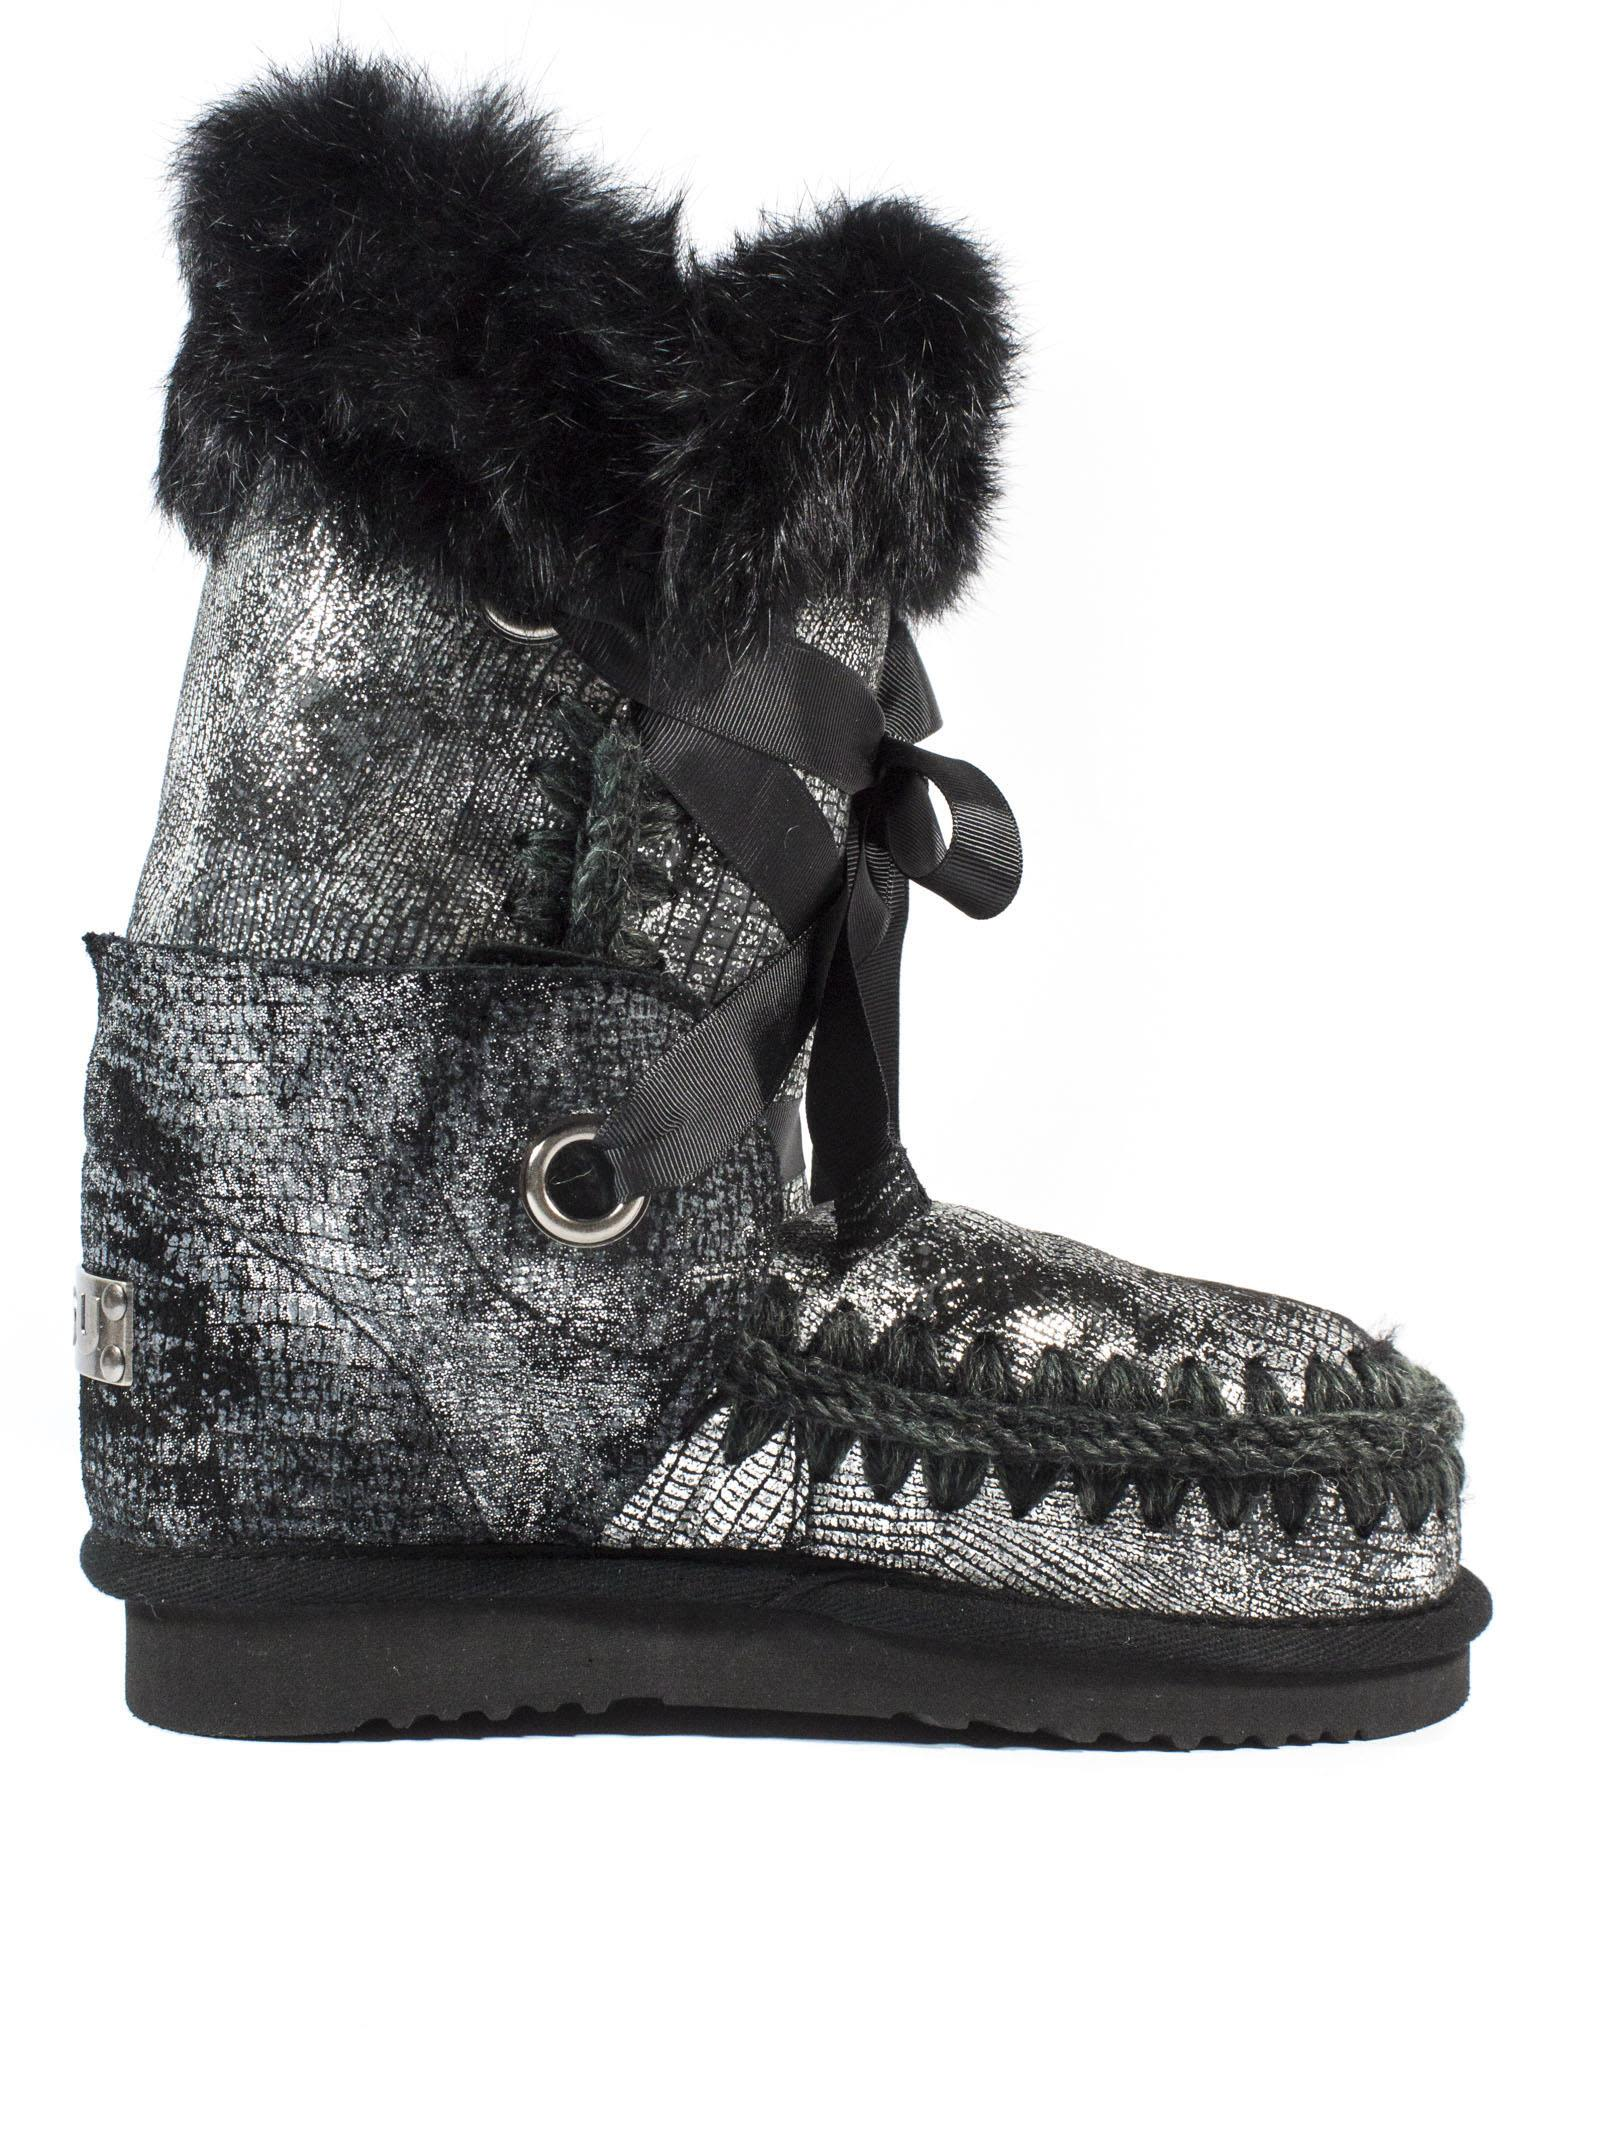 Eskimolace In Black Sheepskin With Laces And Fur.